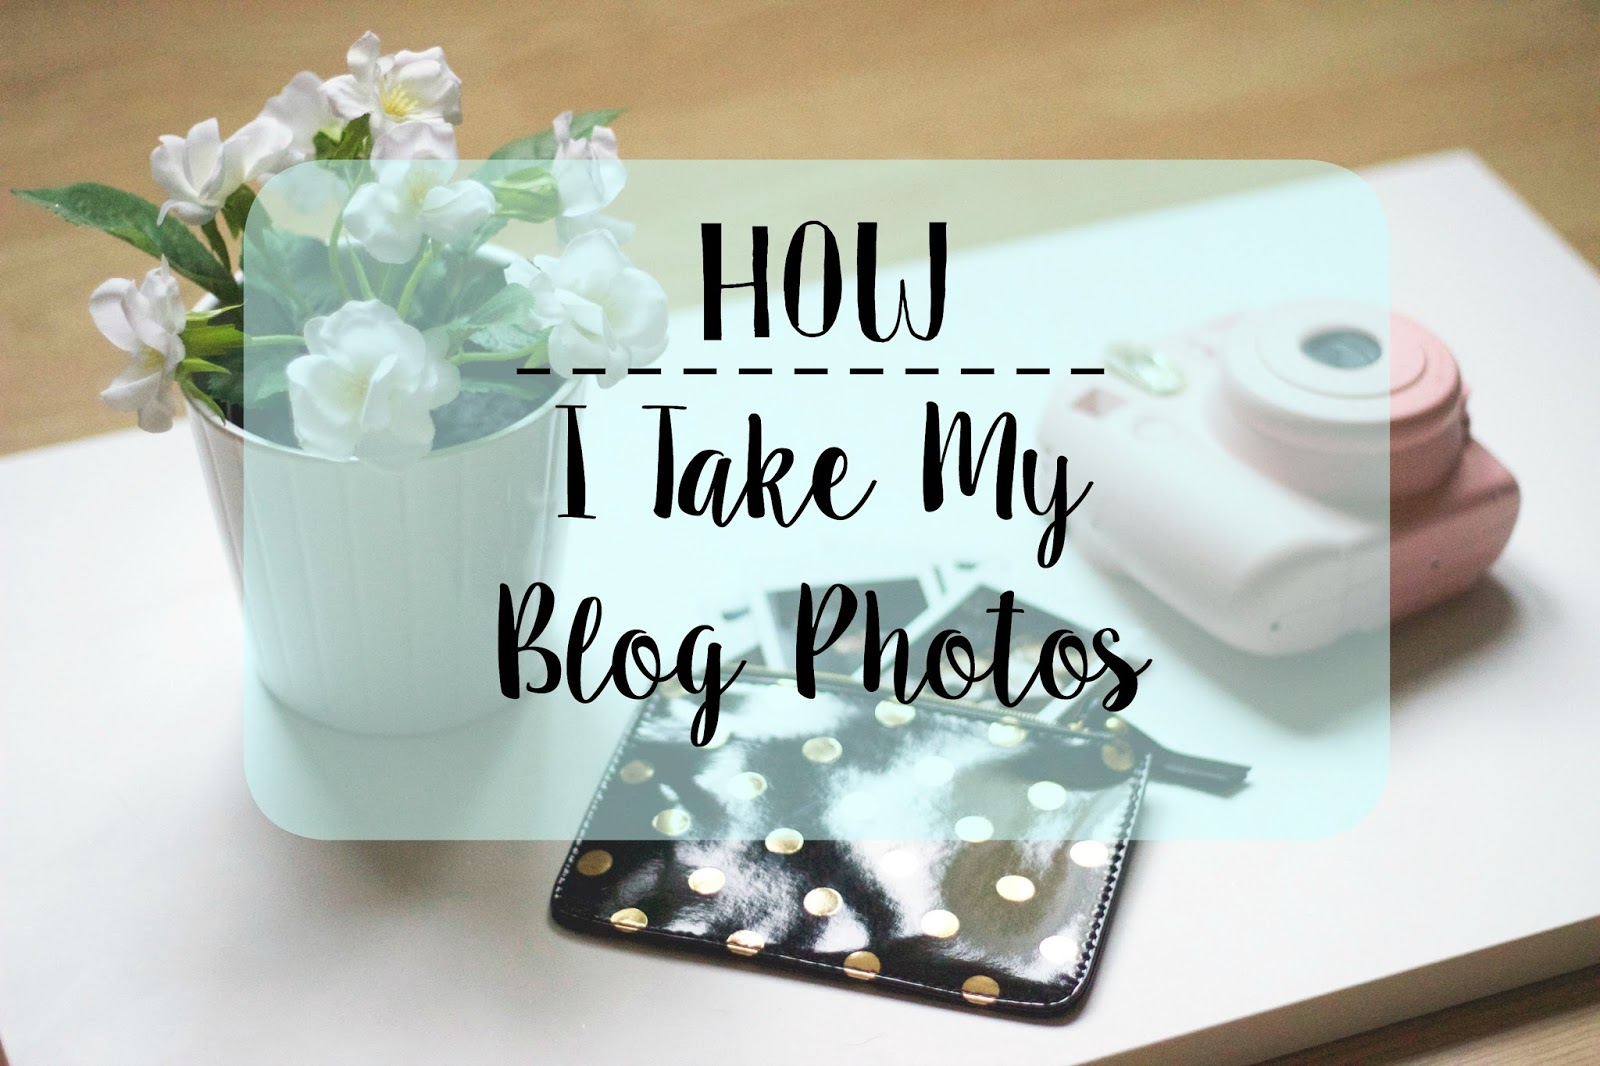 How To Take Blog Photos